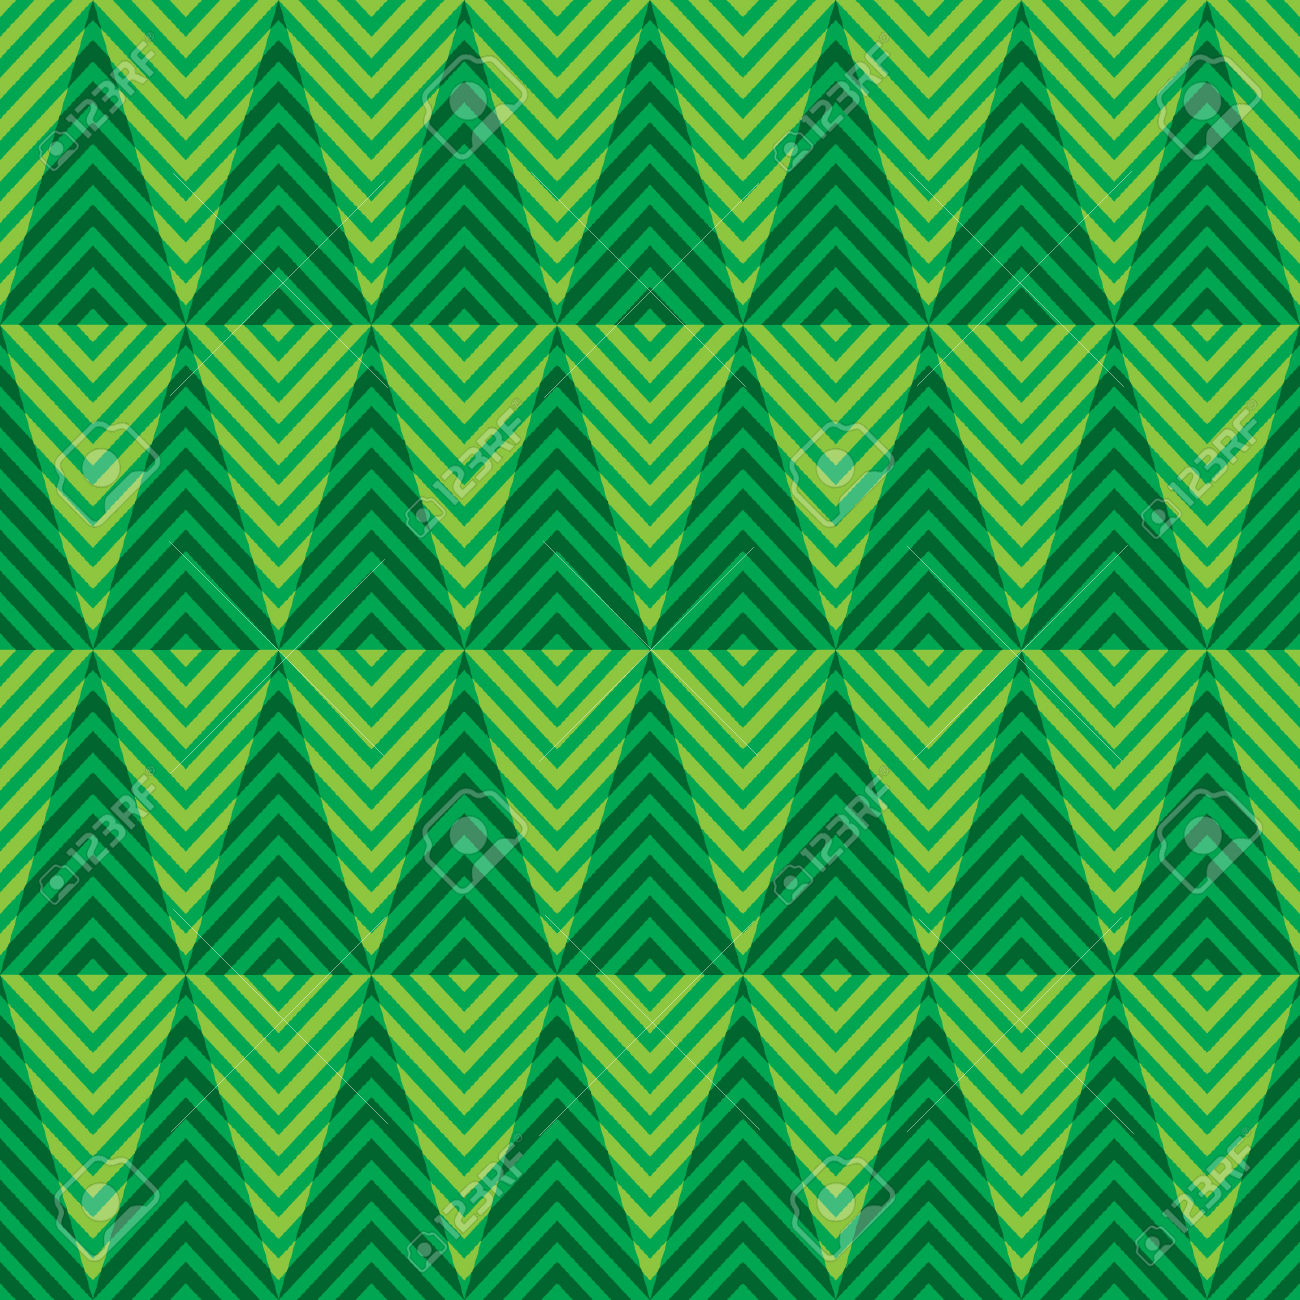 Seamless Festive Christmas Gift Wrapping Paper Pattern Texture